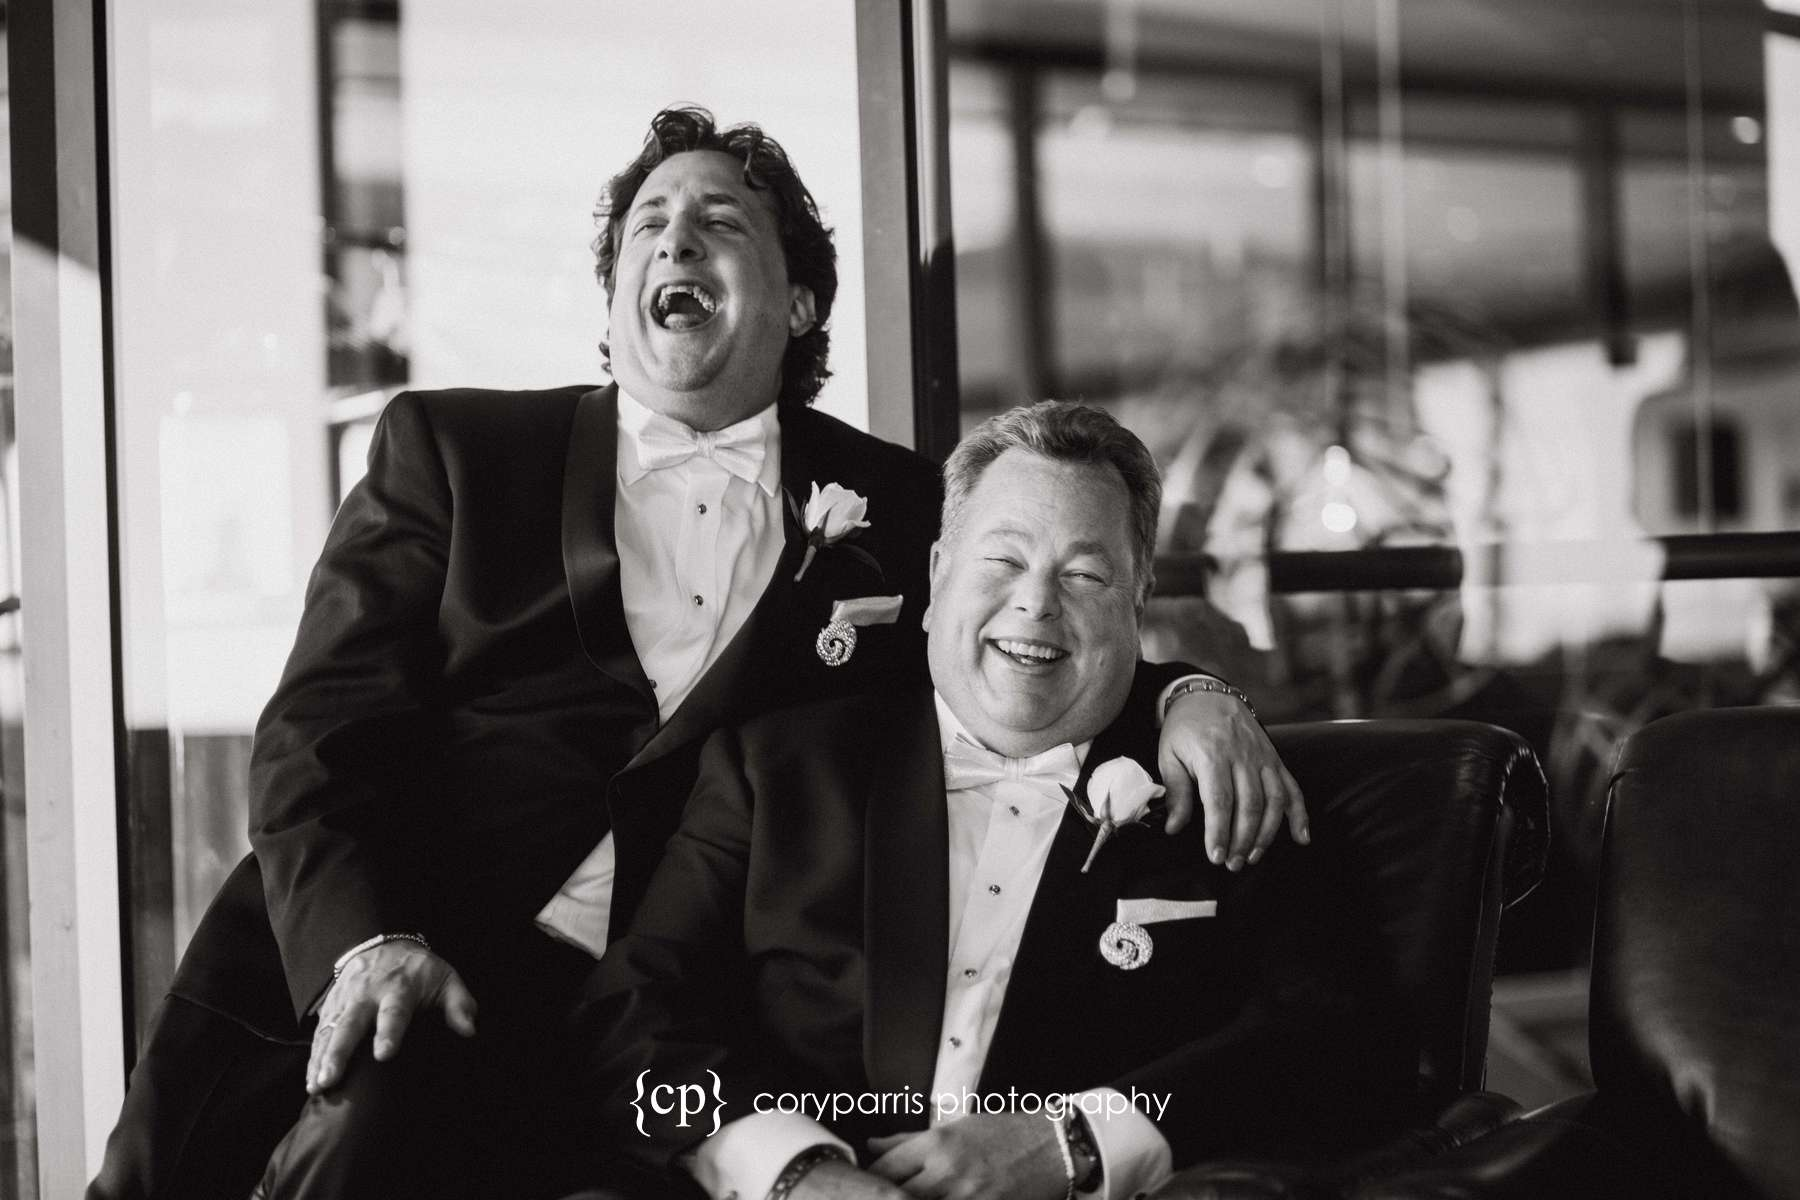 Rob and Peter laughing together before their wedding at the Columbia Tower Club.